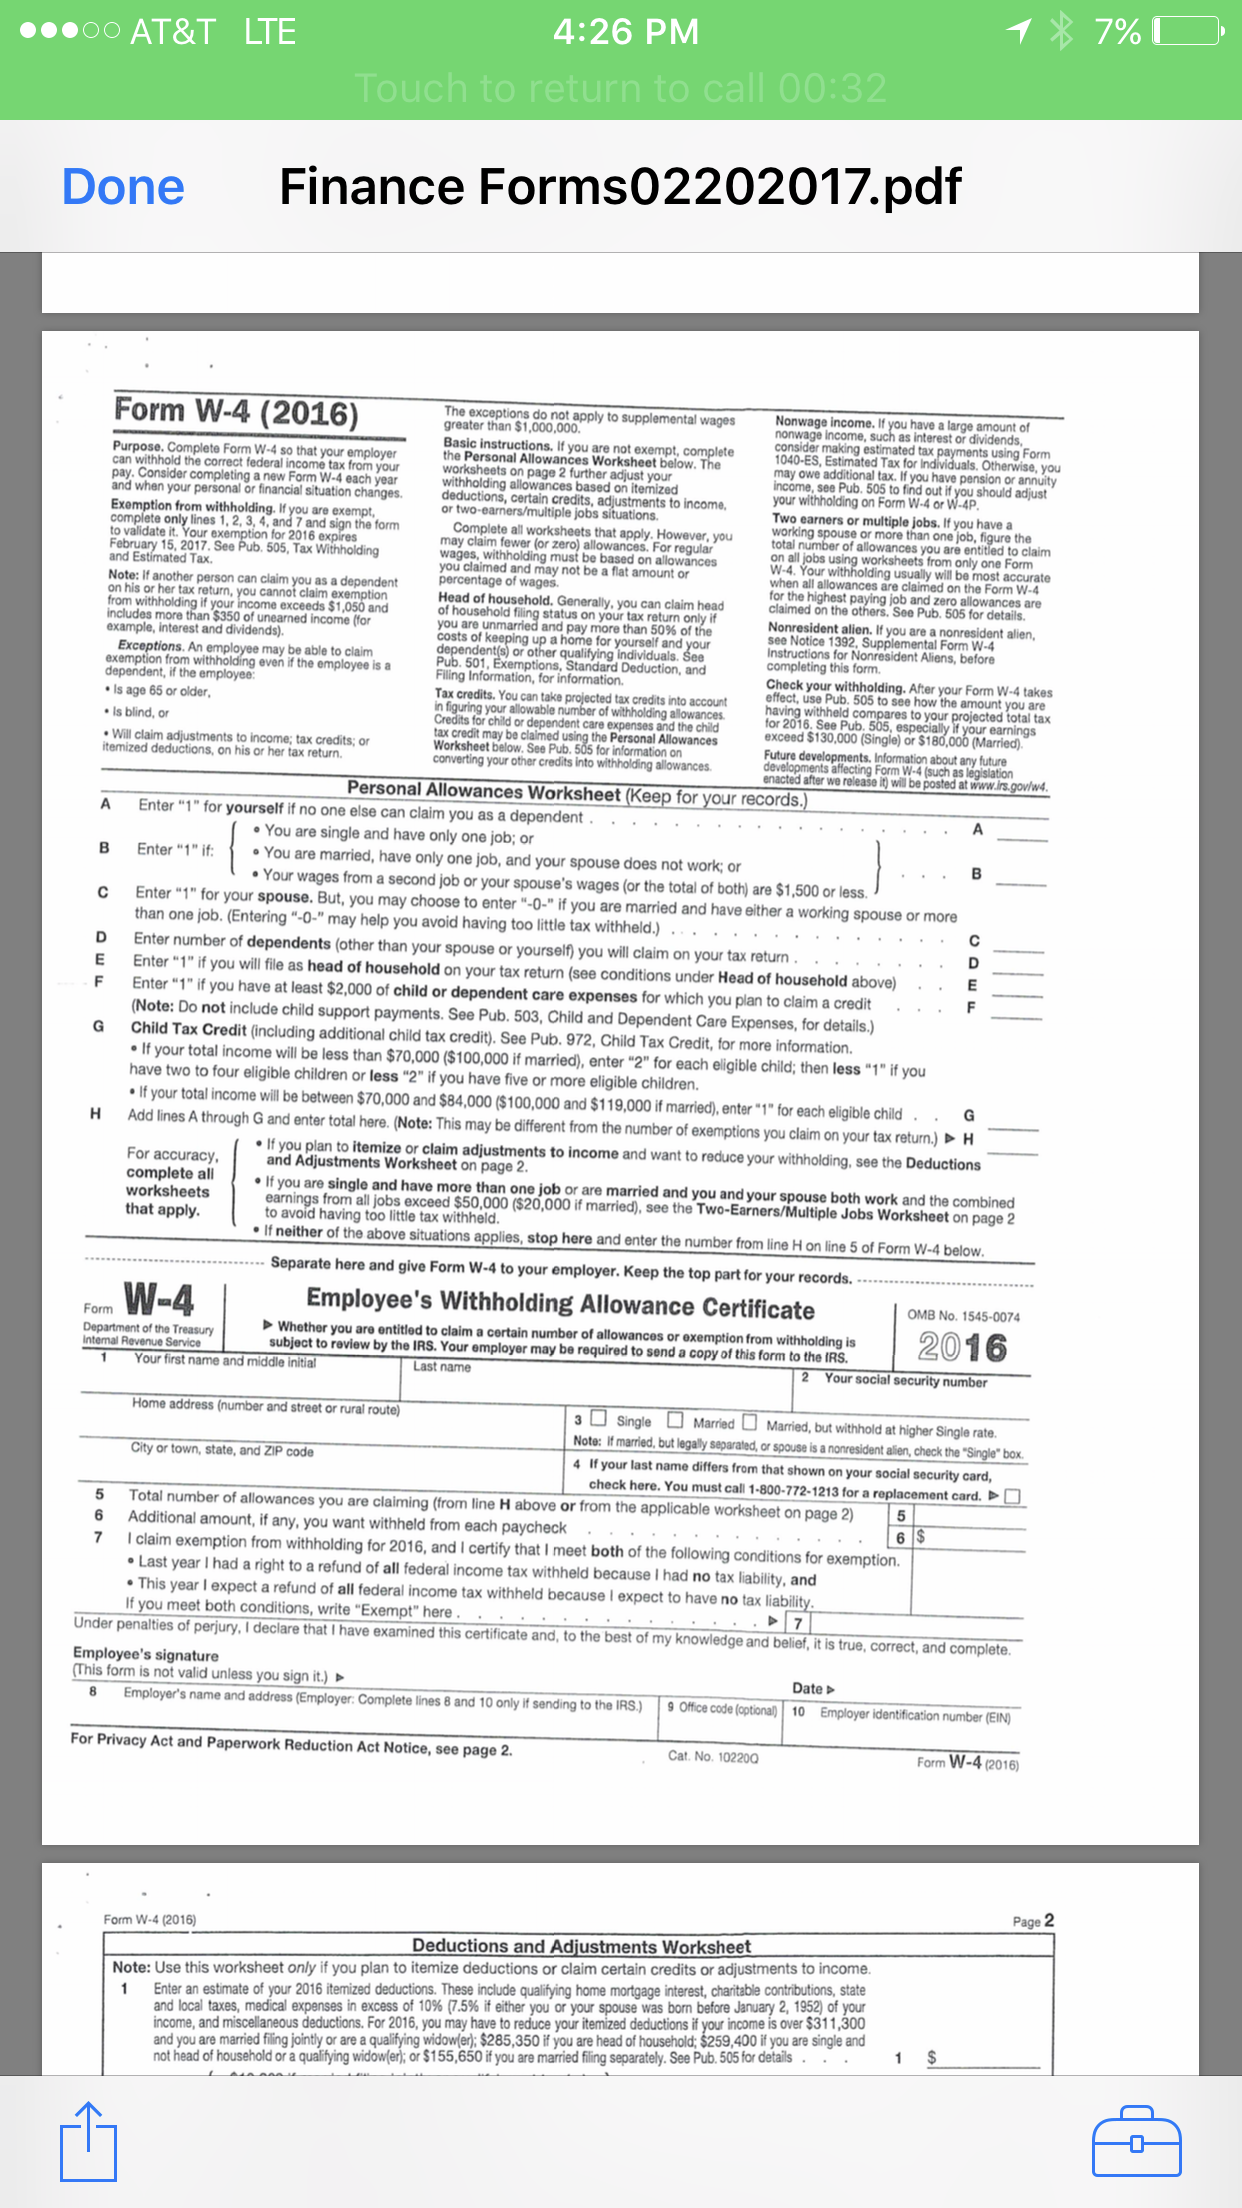 worksheet W 4 Allowances Worksheet i am not sure how many allowances to claim on my w4 turbotax support img 2291 png